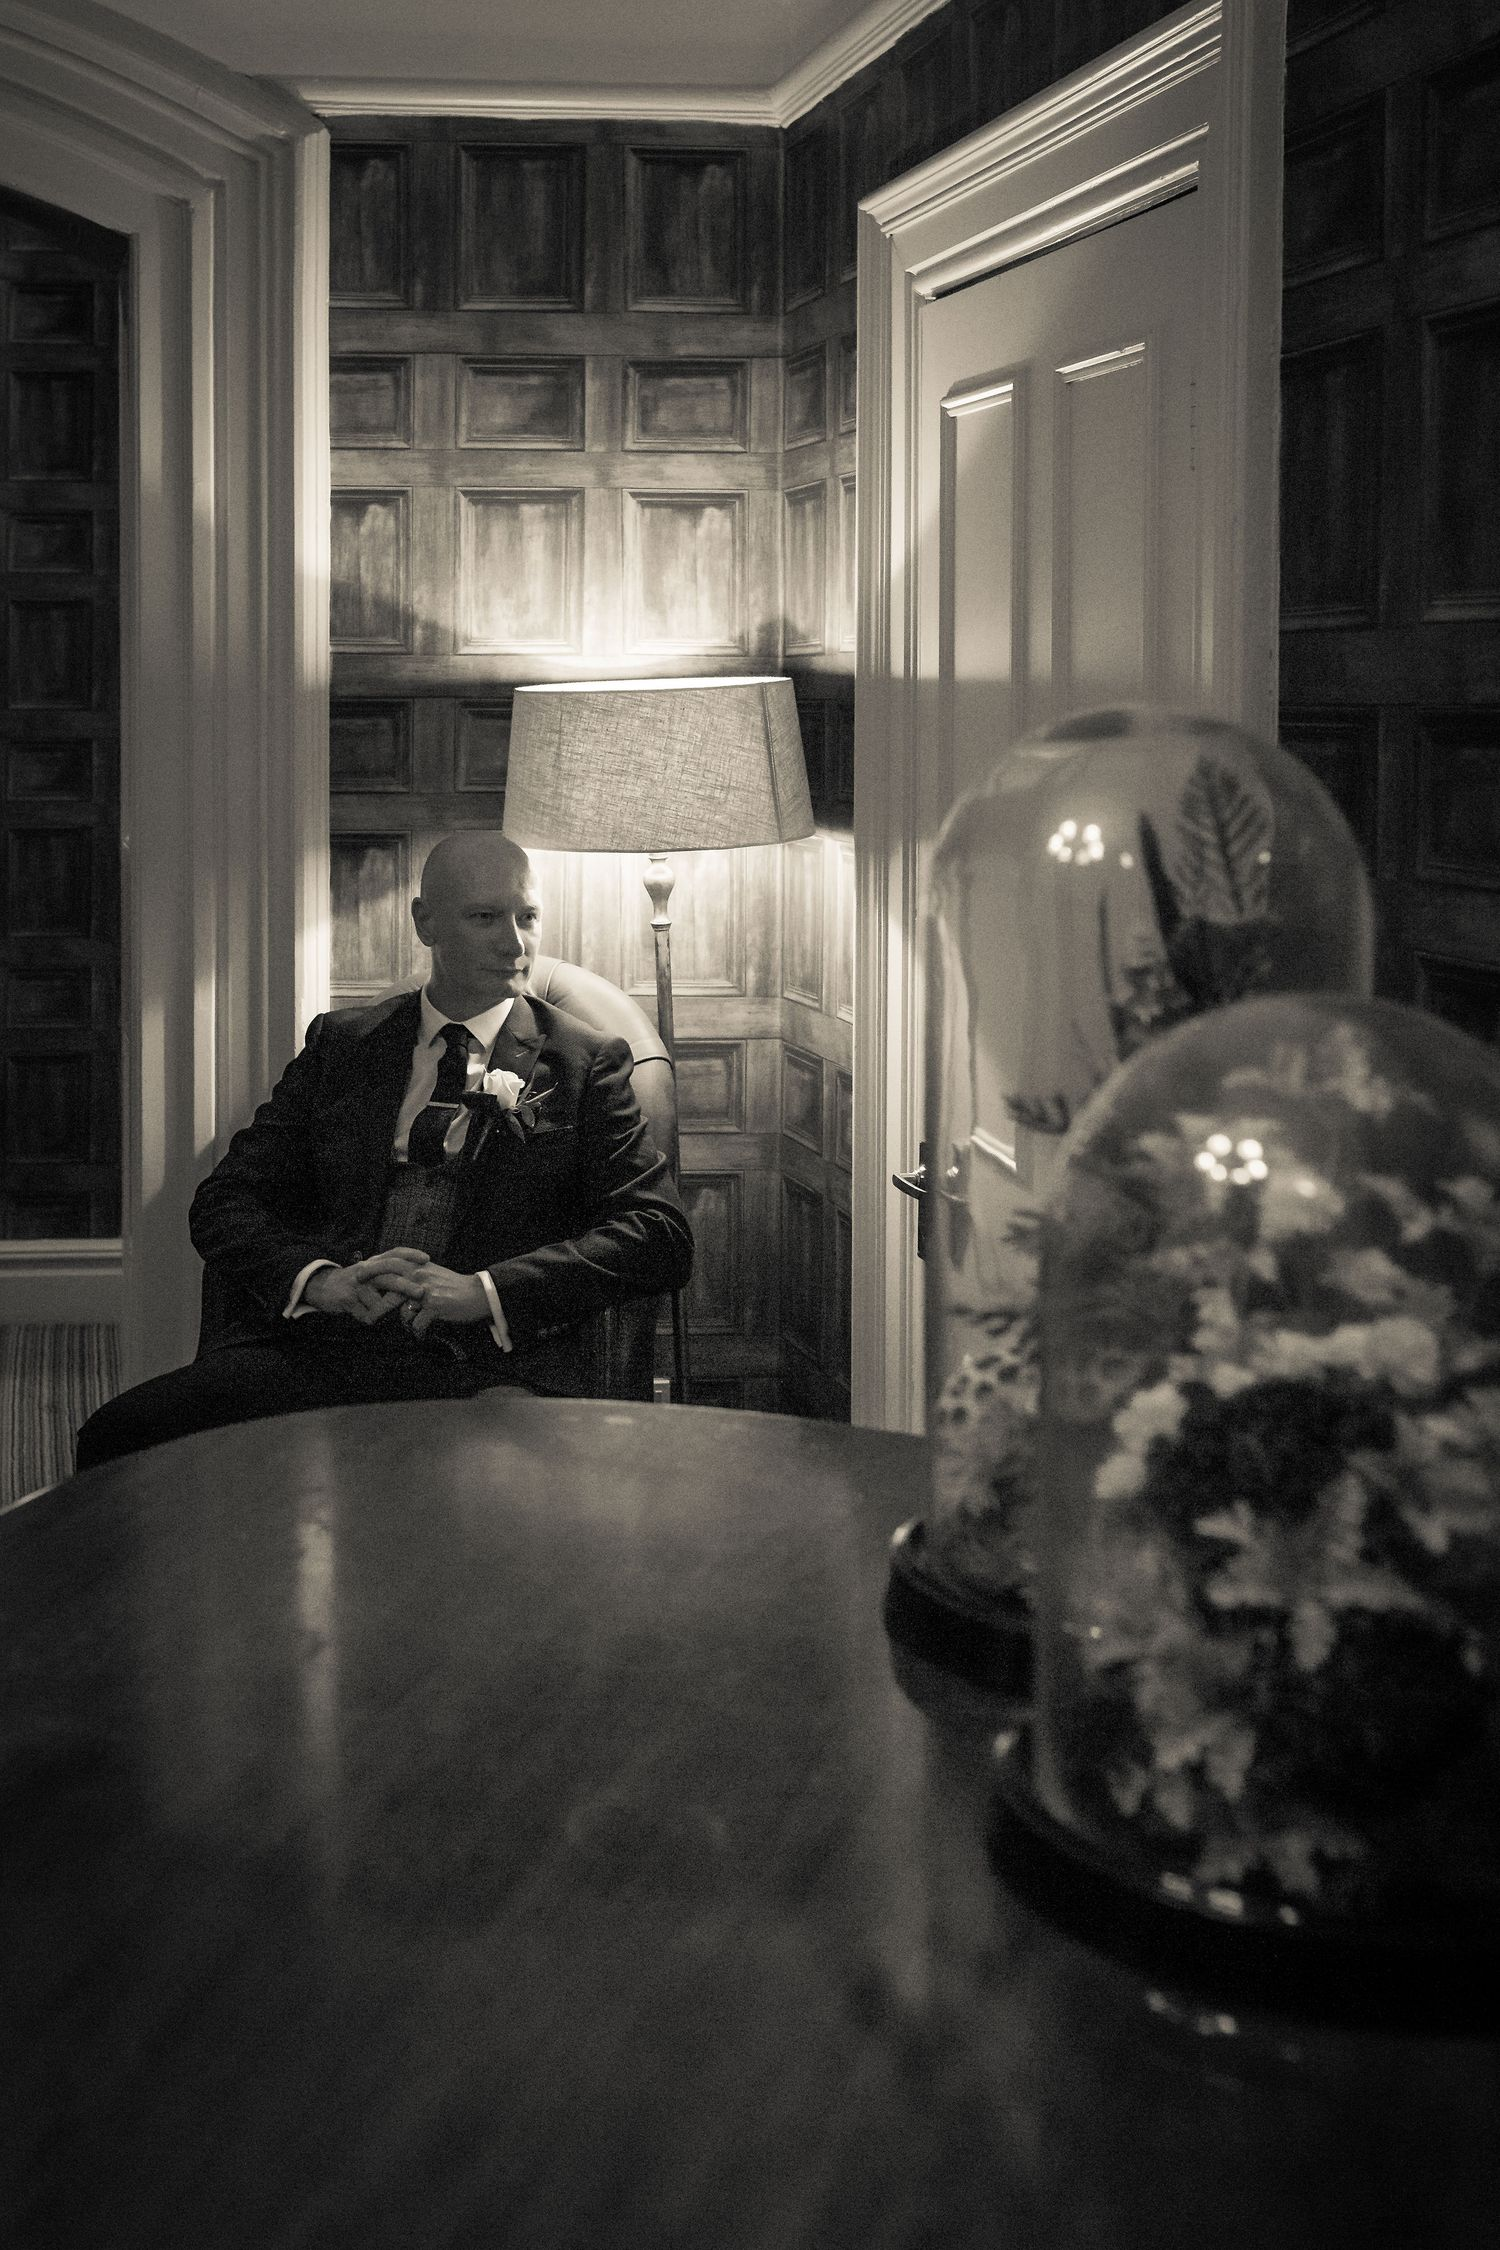 atmospheric black and white shot of the groom sitting at the end of a desk indoor a floor lamp